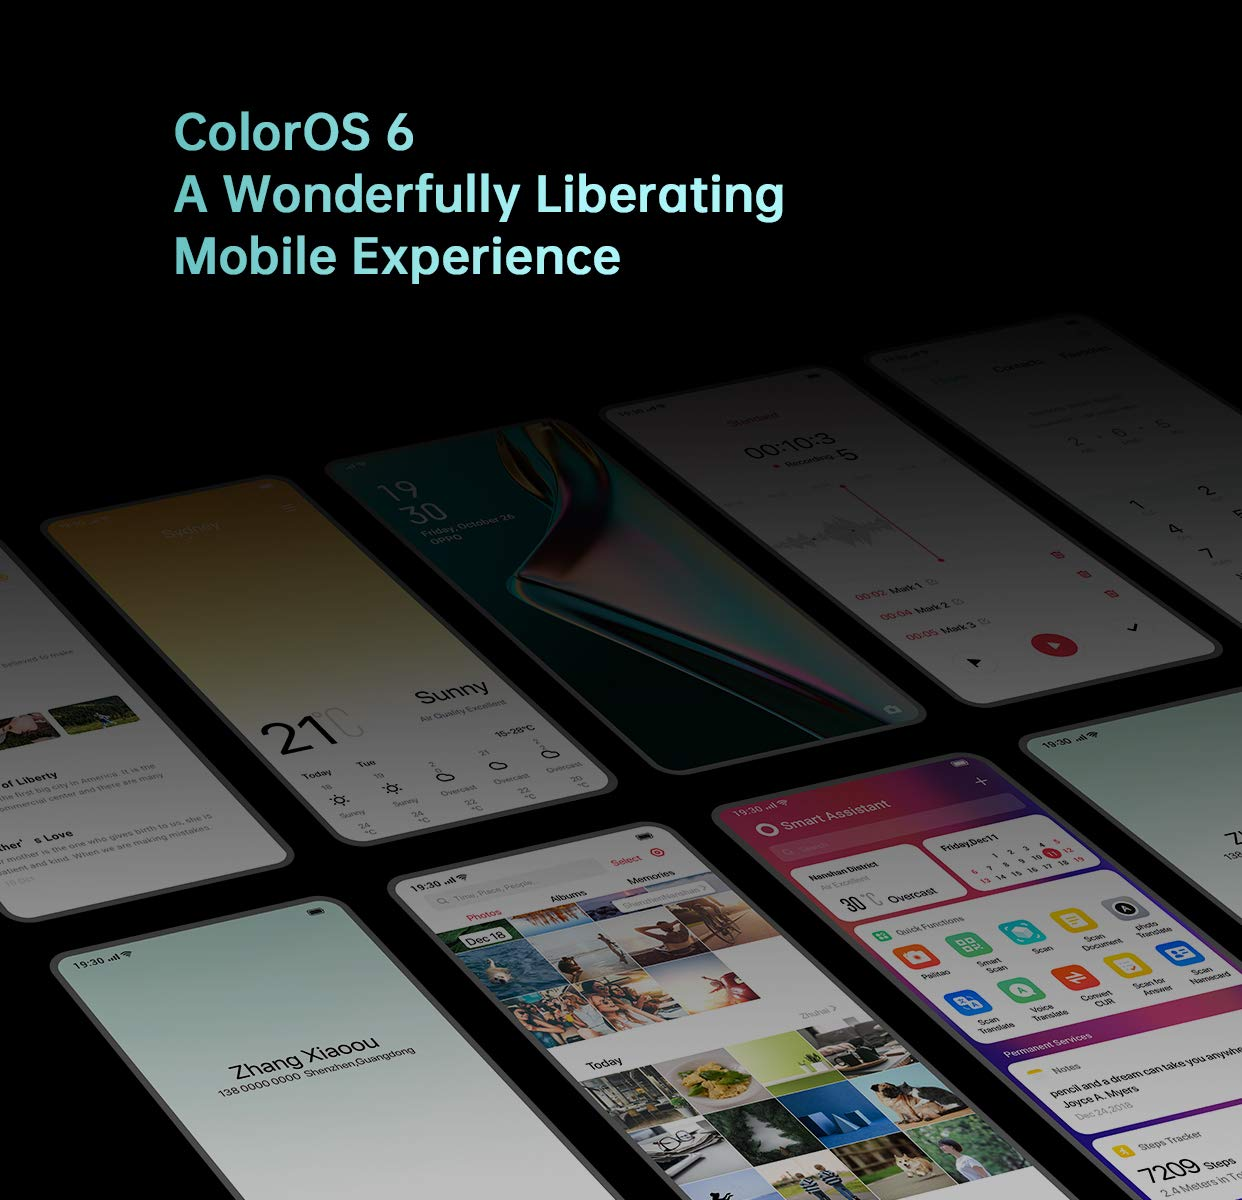 ColorOS 6 (based on Android 9 Pie) is feature packed